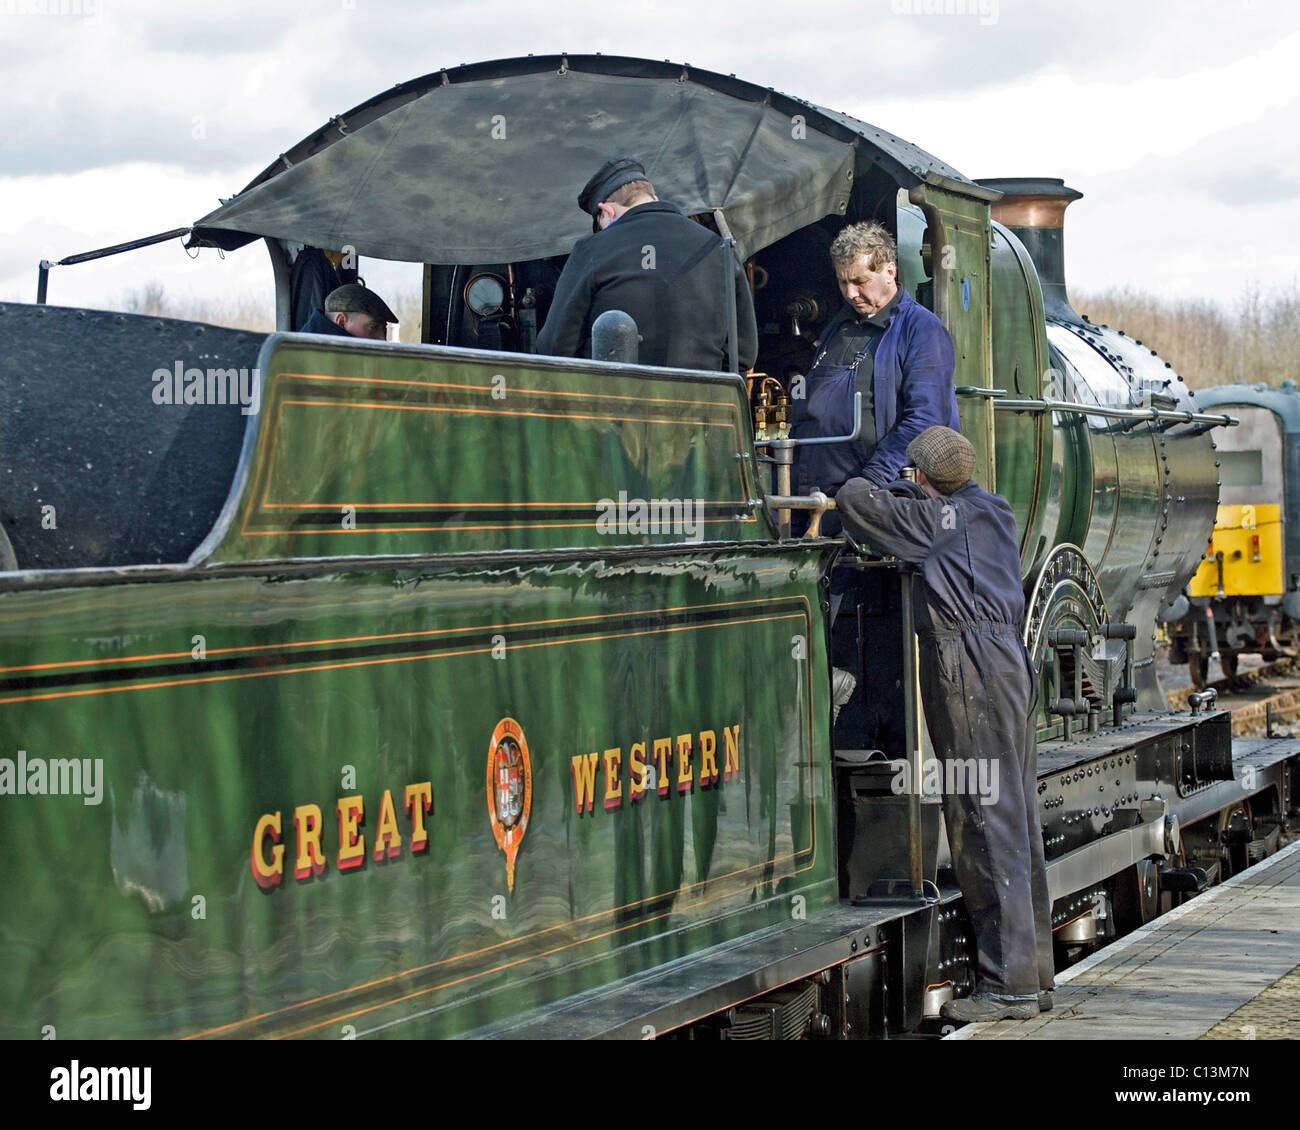 Great Western Steam Locomotive City Of Truro Stock Photos